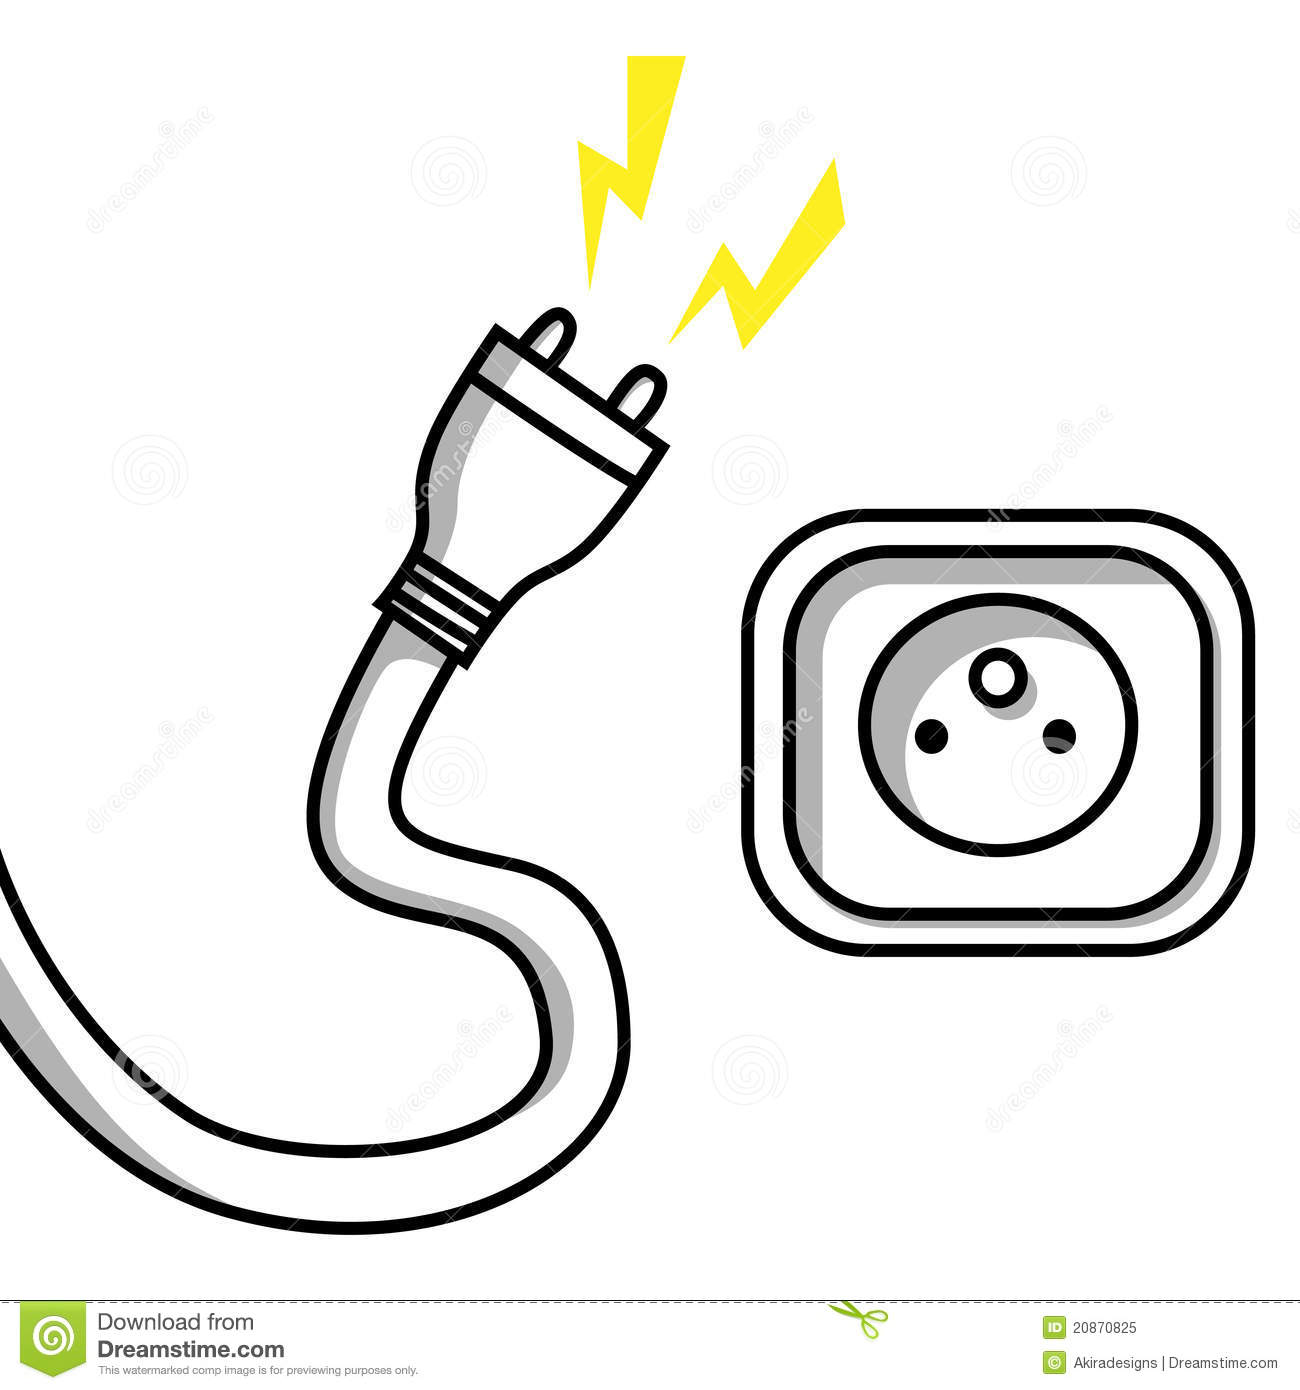 Plug And Socket Royalty Free Stock Photo - Image: 20870825